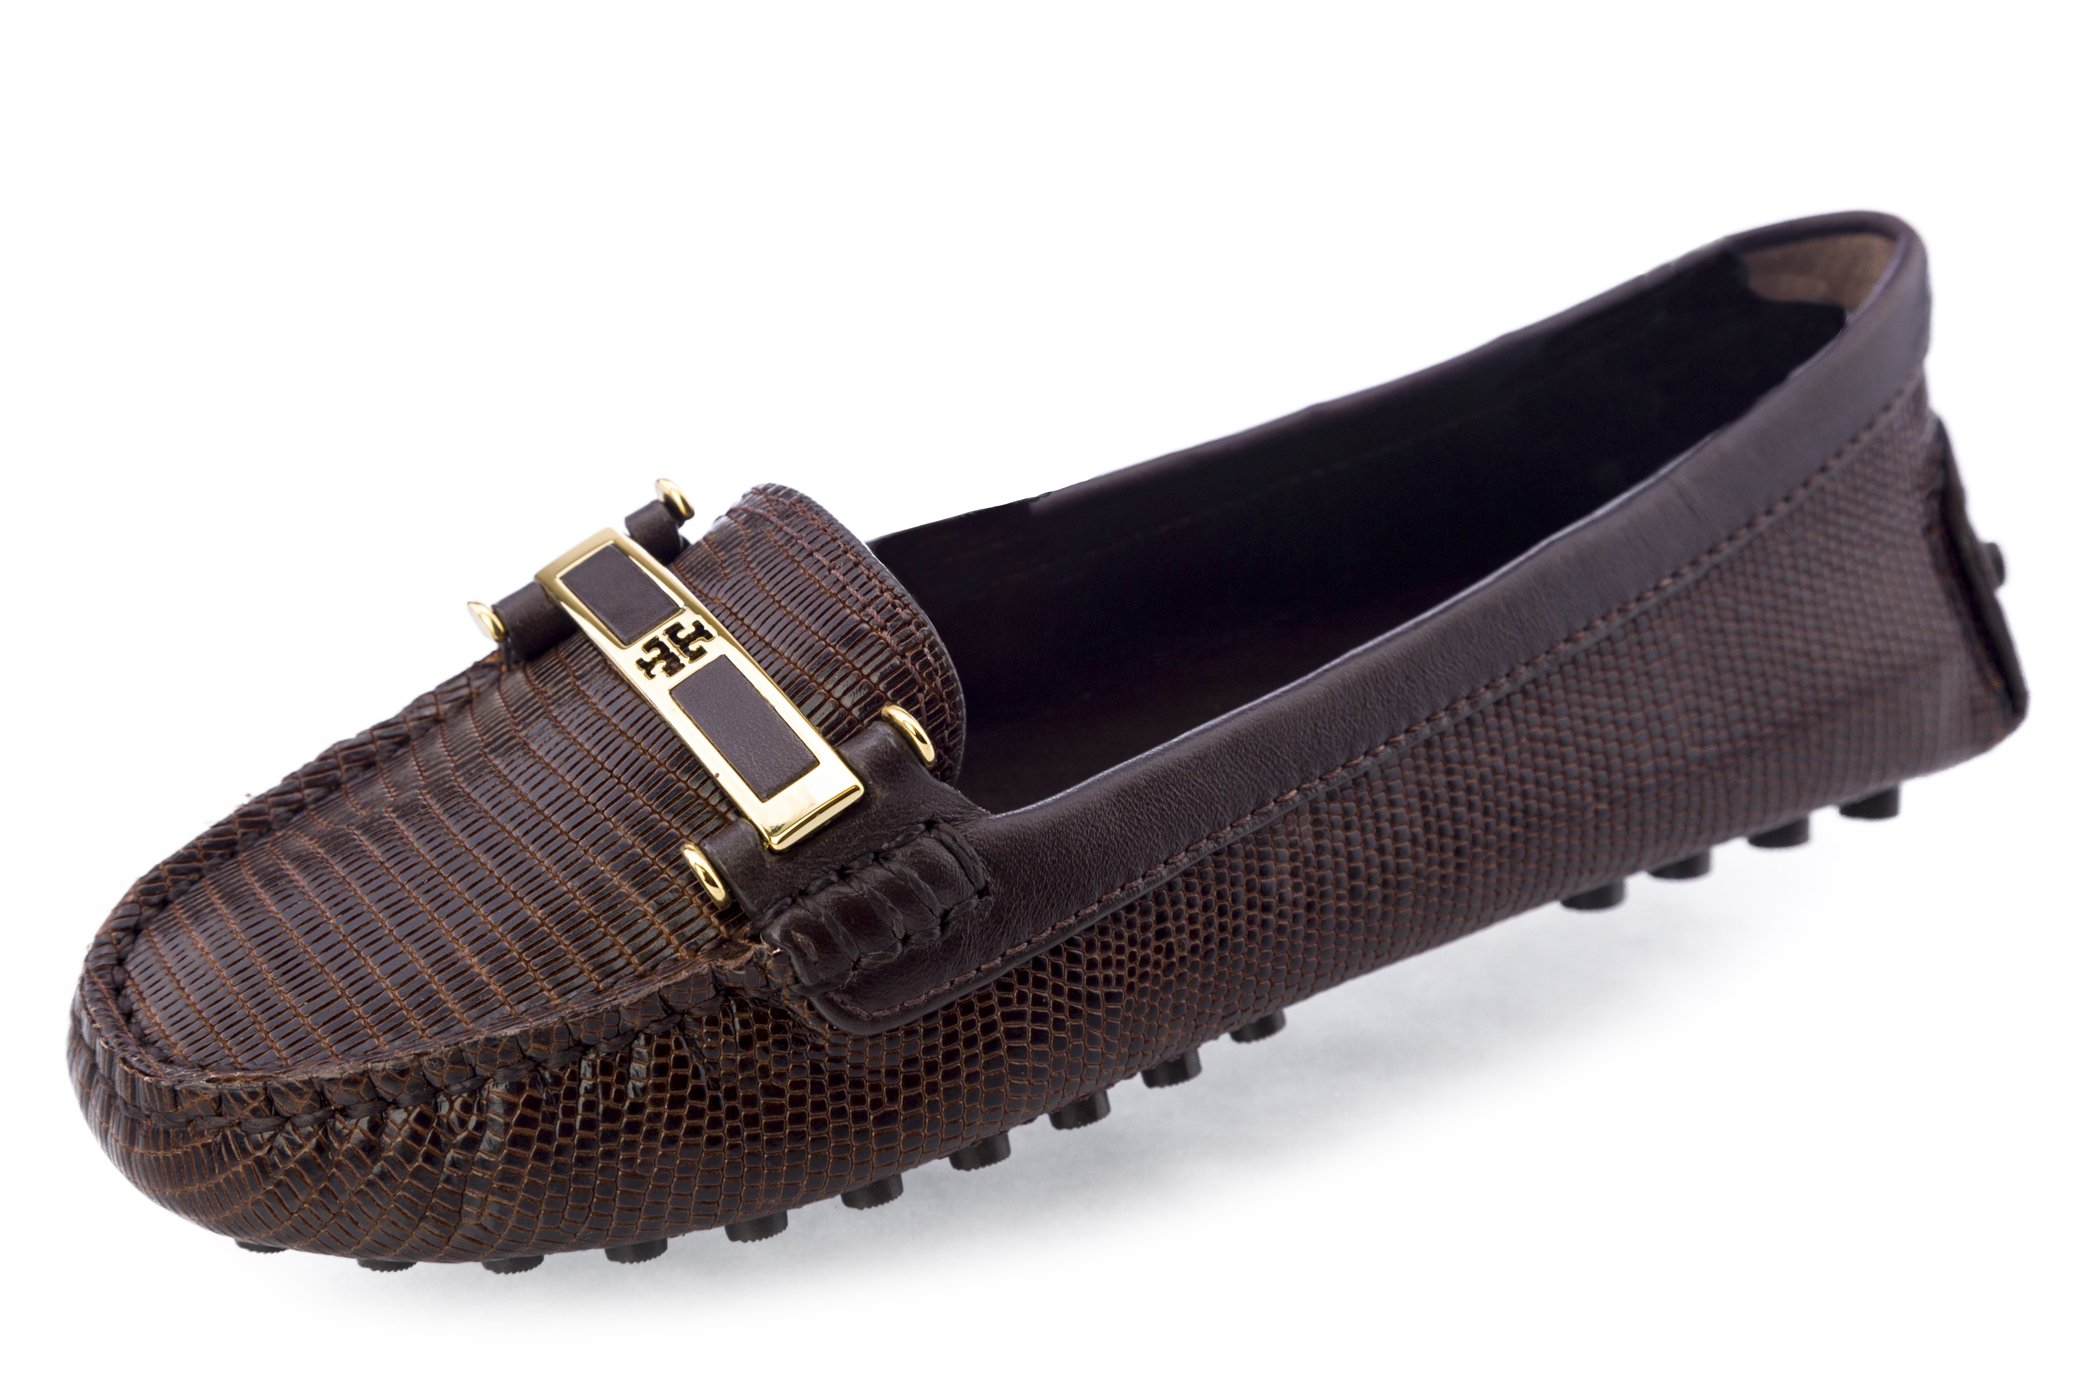 Tory Burch Caralyn Driving Shoes 7 Coco